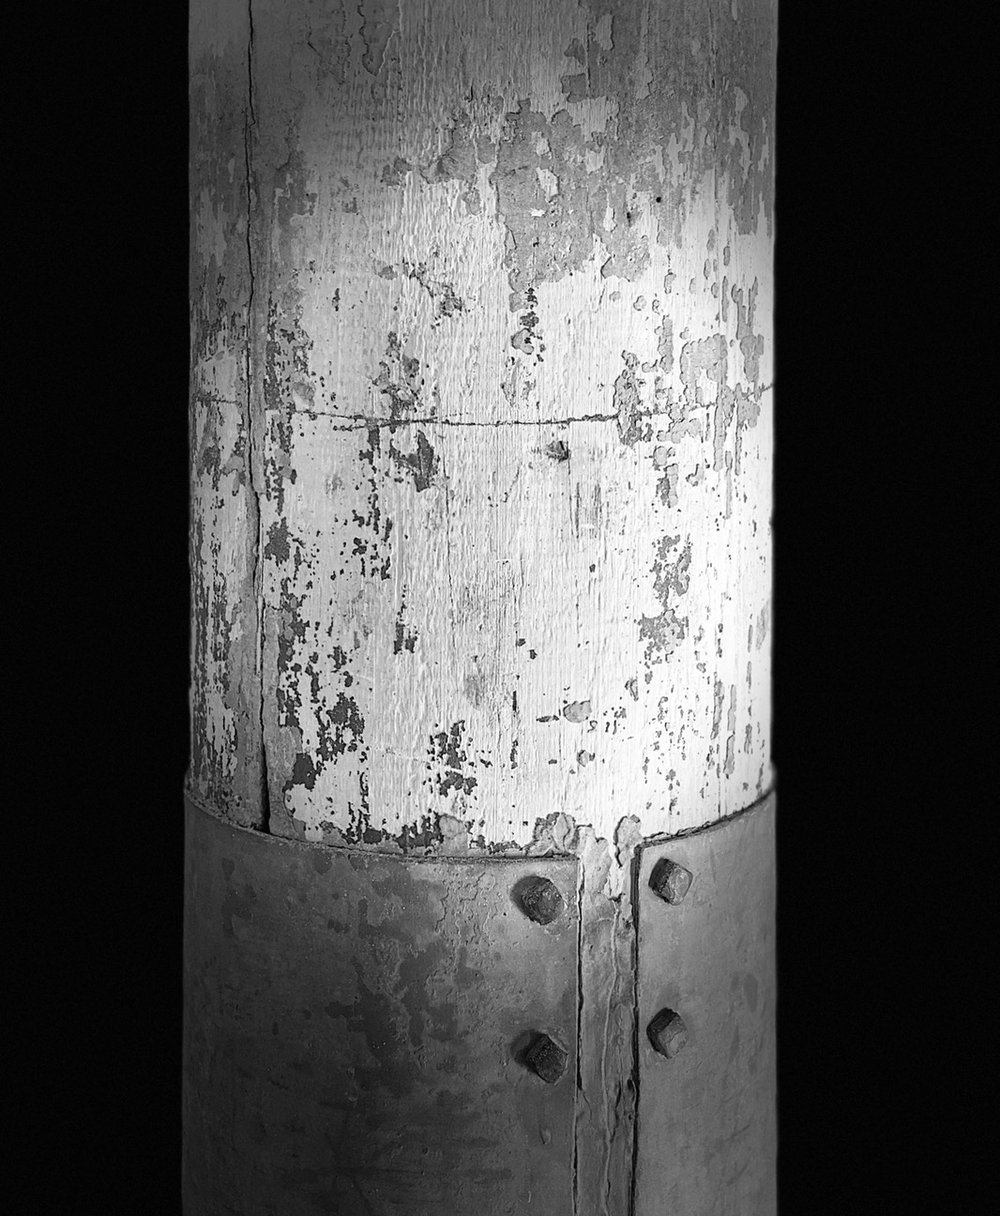 Detail of a support post, Mass MoCa, North Adams, MA.  ©2017seanwalmsley